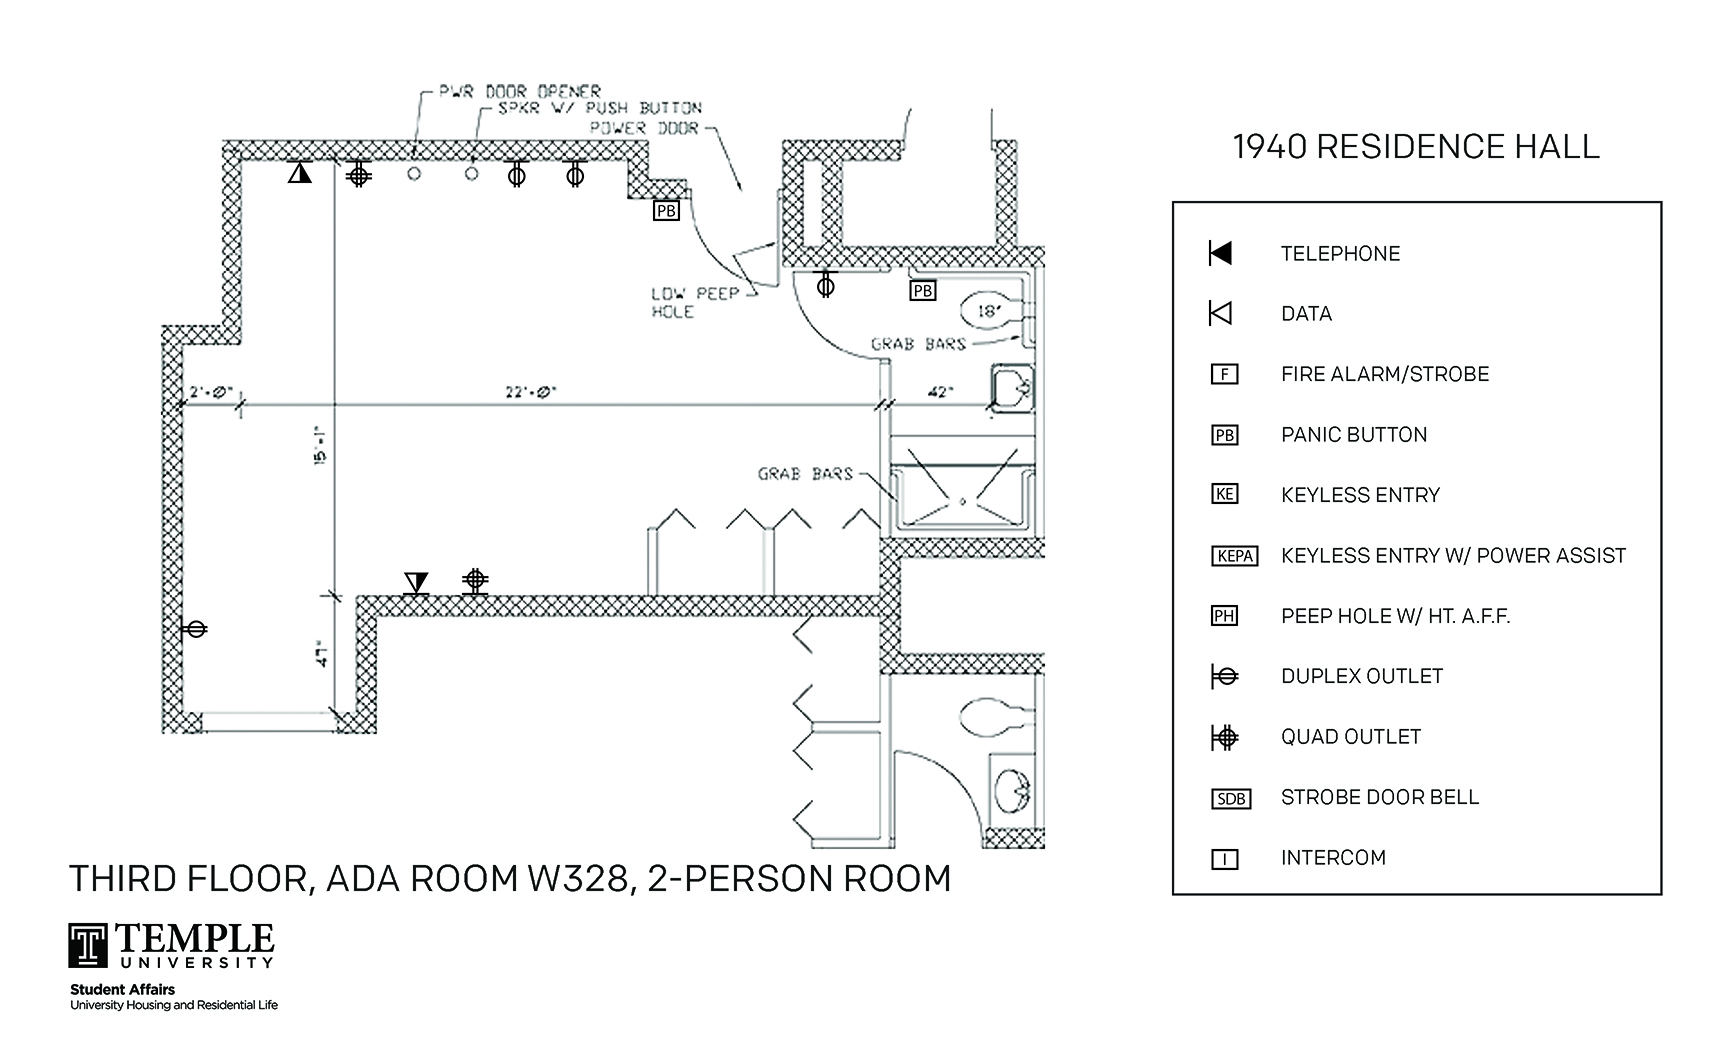 Accessible Room Diagrams: 2 person, 1 bedroom Suite - W328